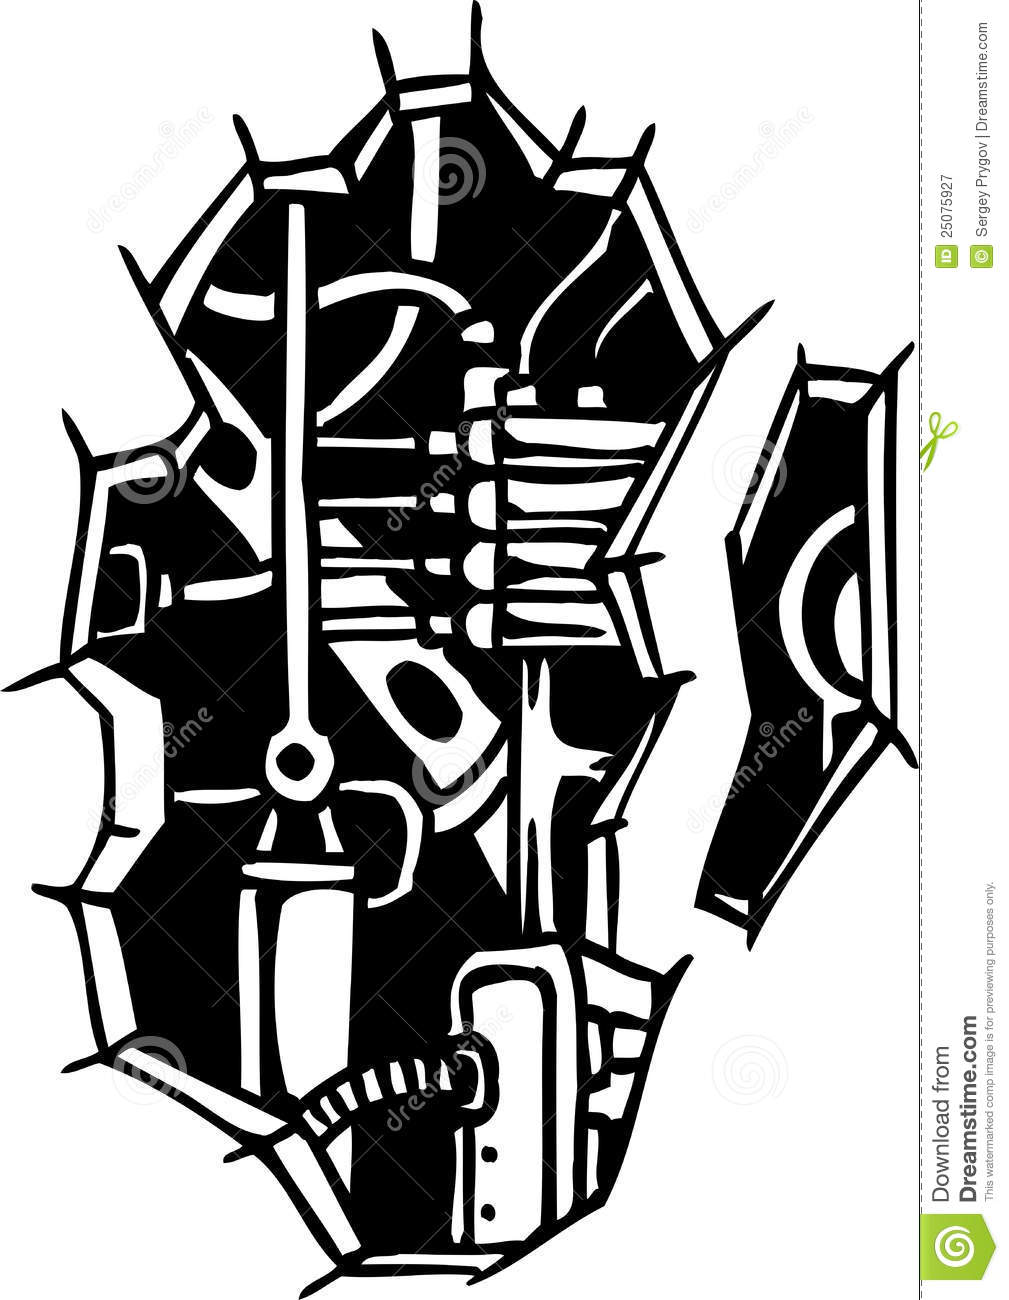 Biomechanical Designs Vector Illustration Stock Vector Ideas And Designs